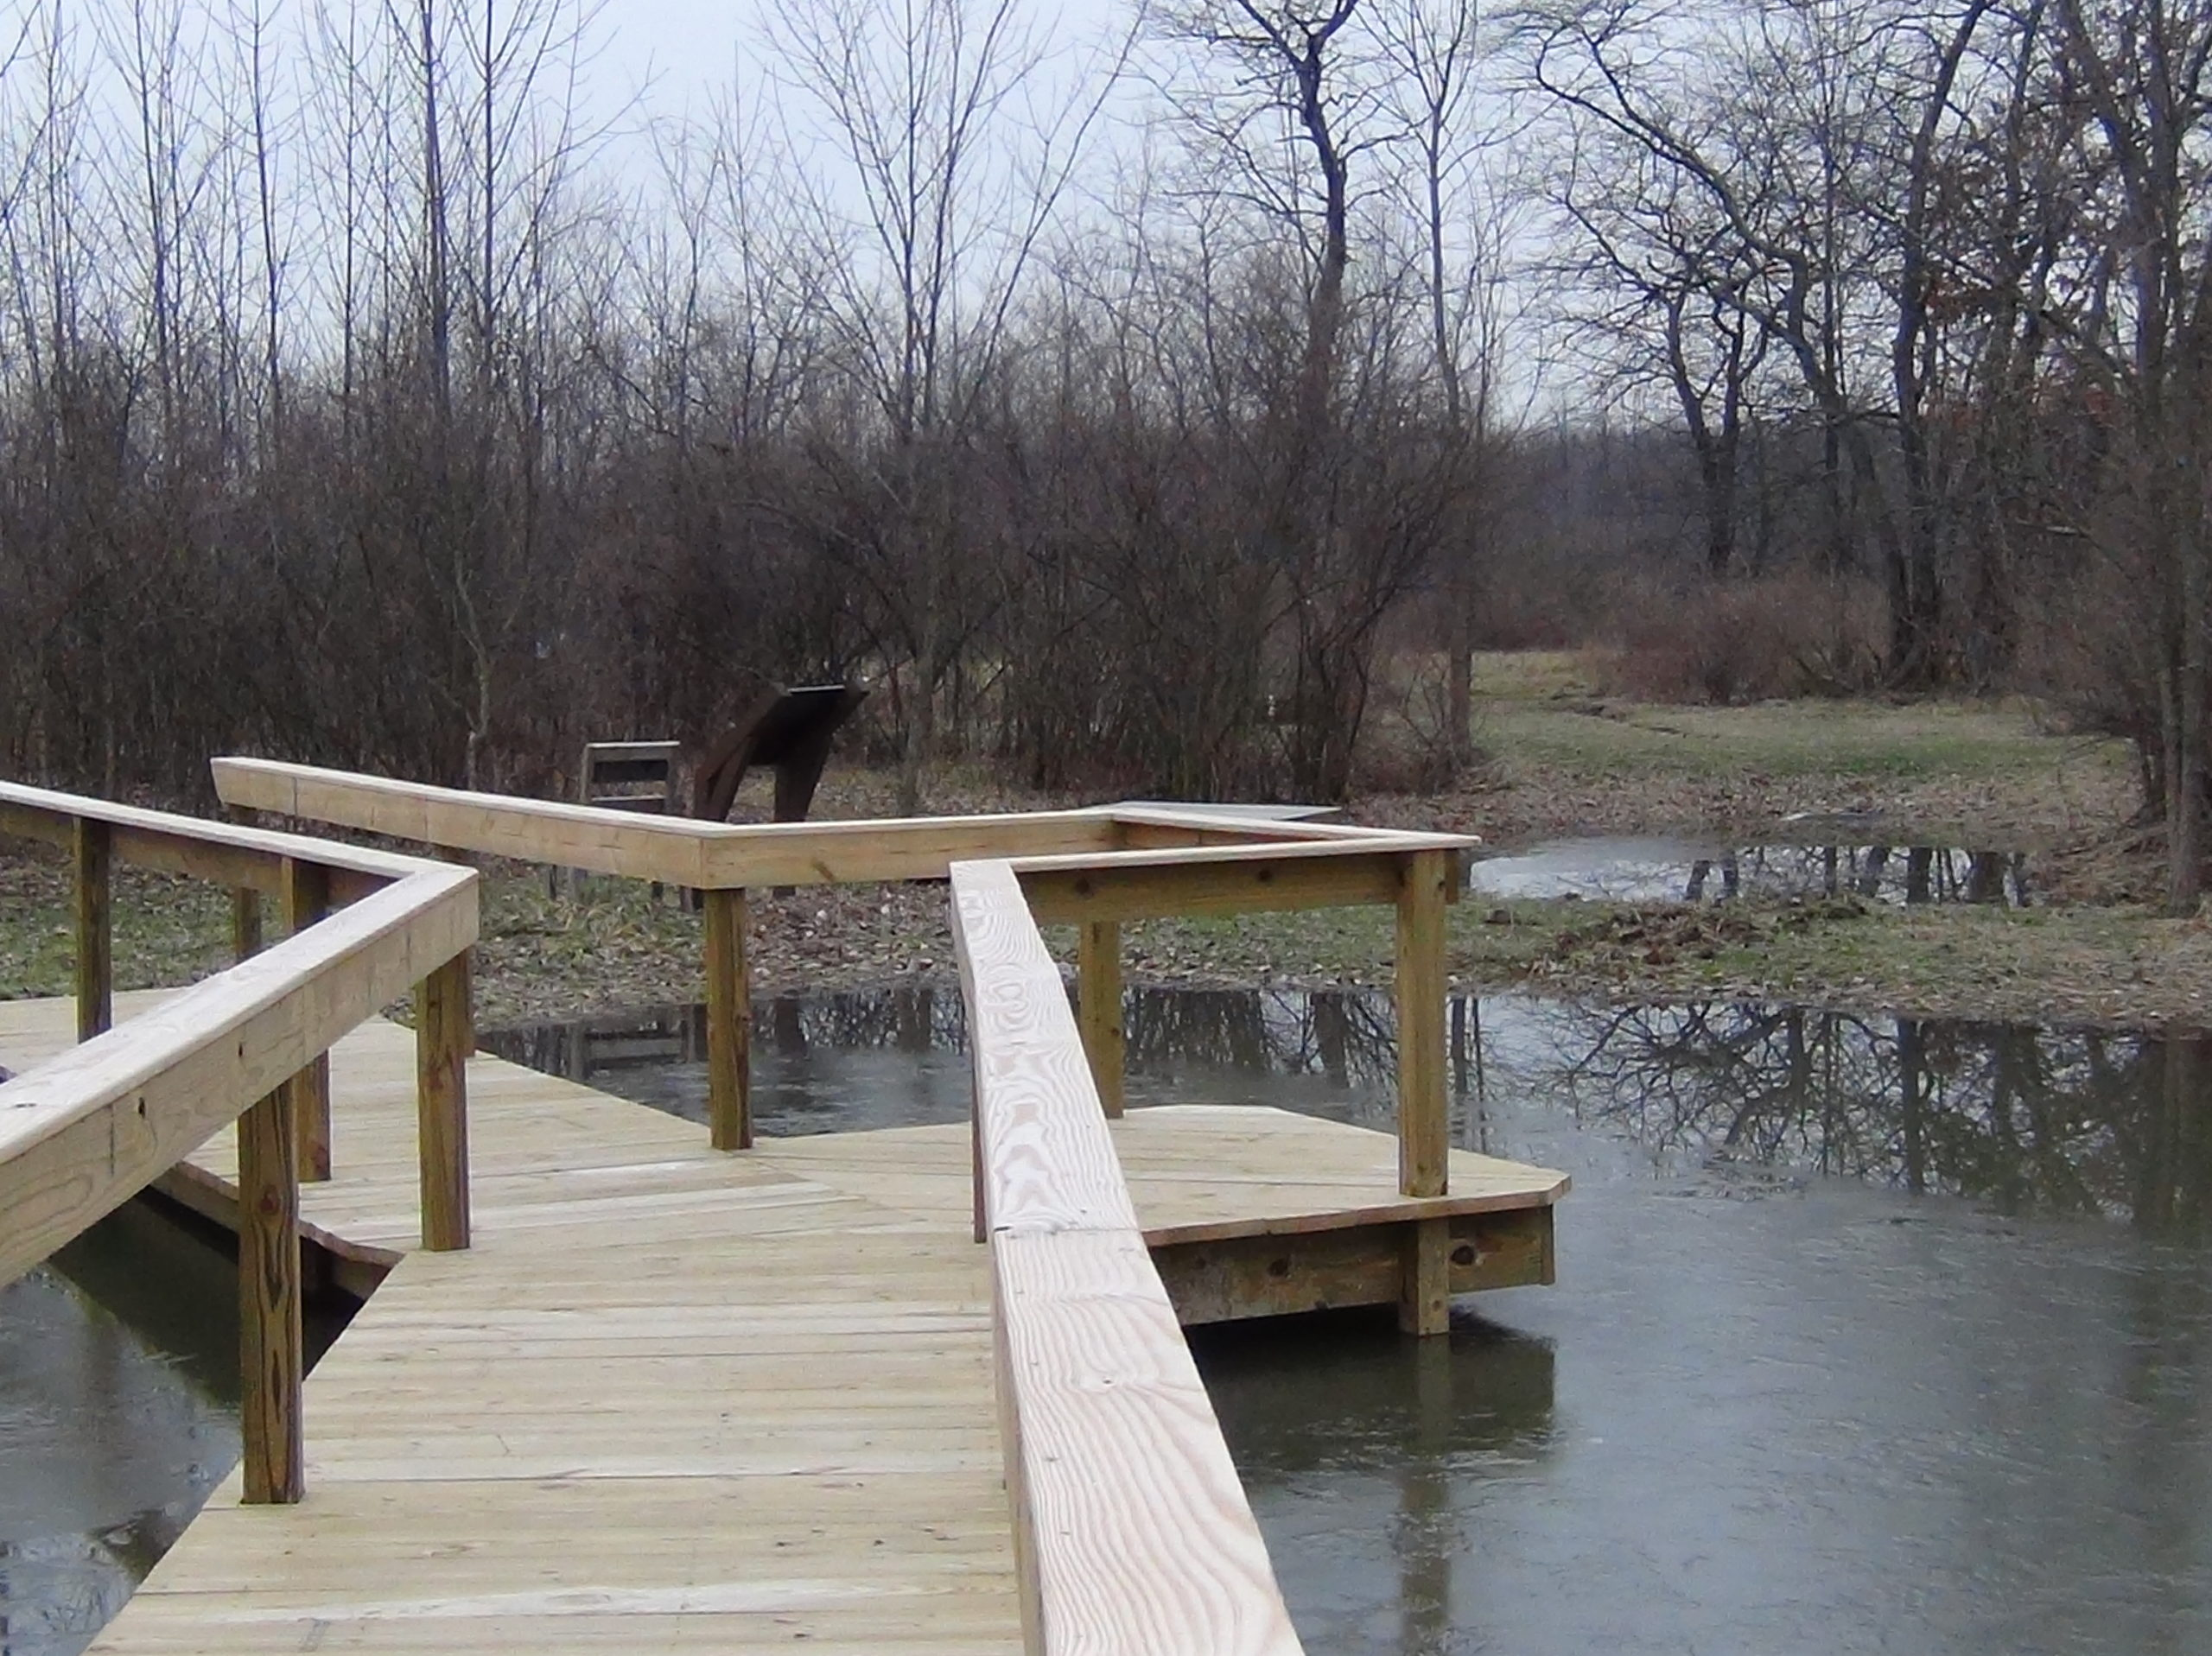 Completed wooden boardwalk over the wetland that is now filled with water.